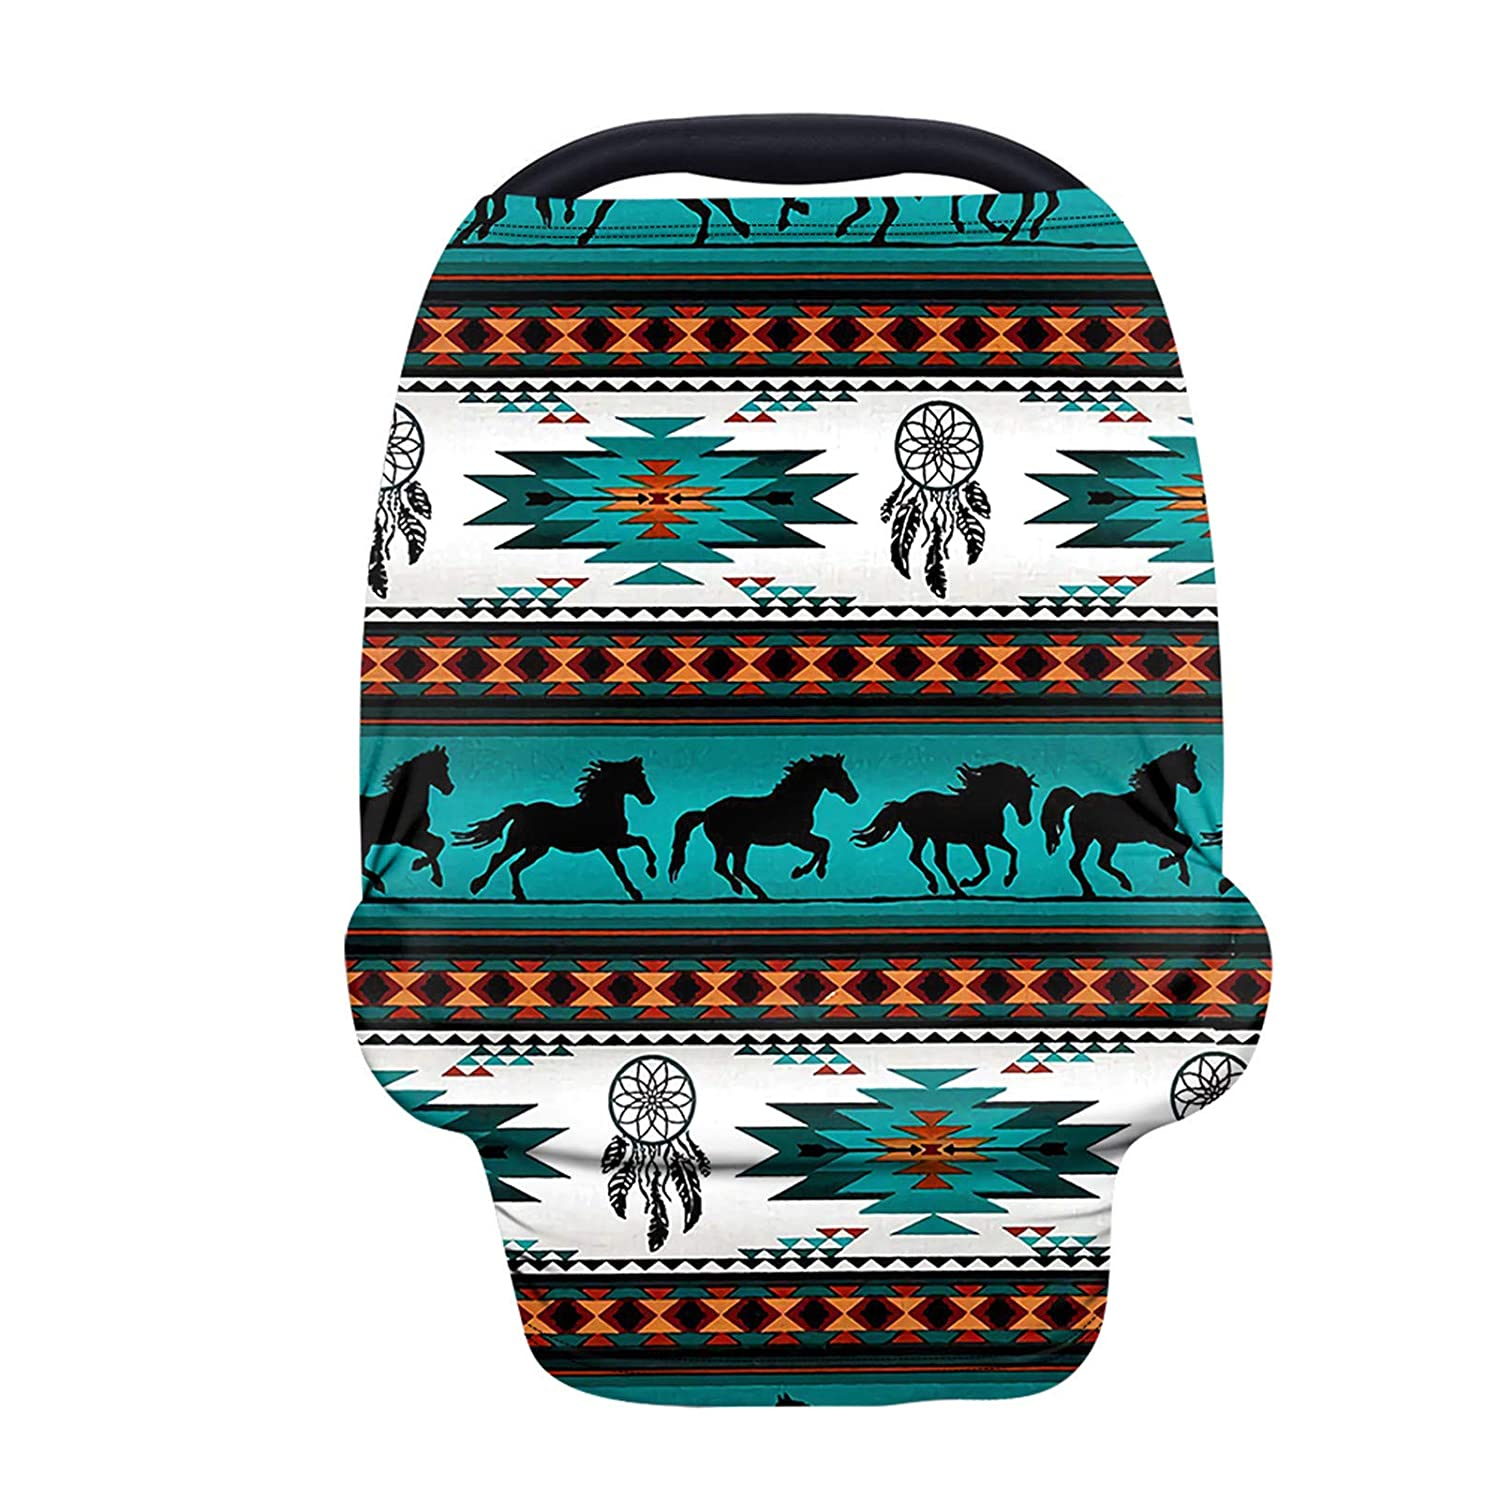 JOAIFO Aztec American Native Horse Cover and Print Cheap sale Blue Max 83% OFF Nursing